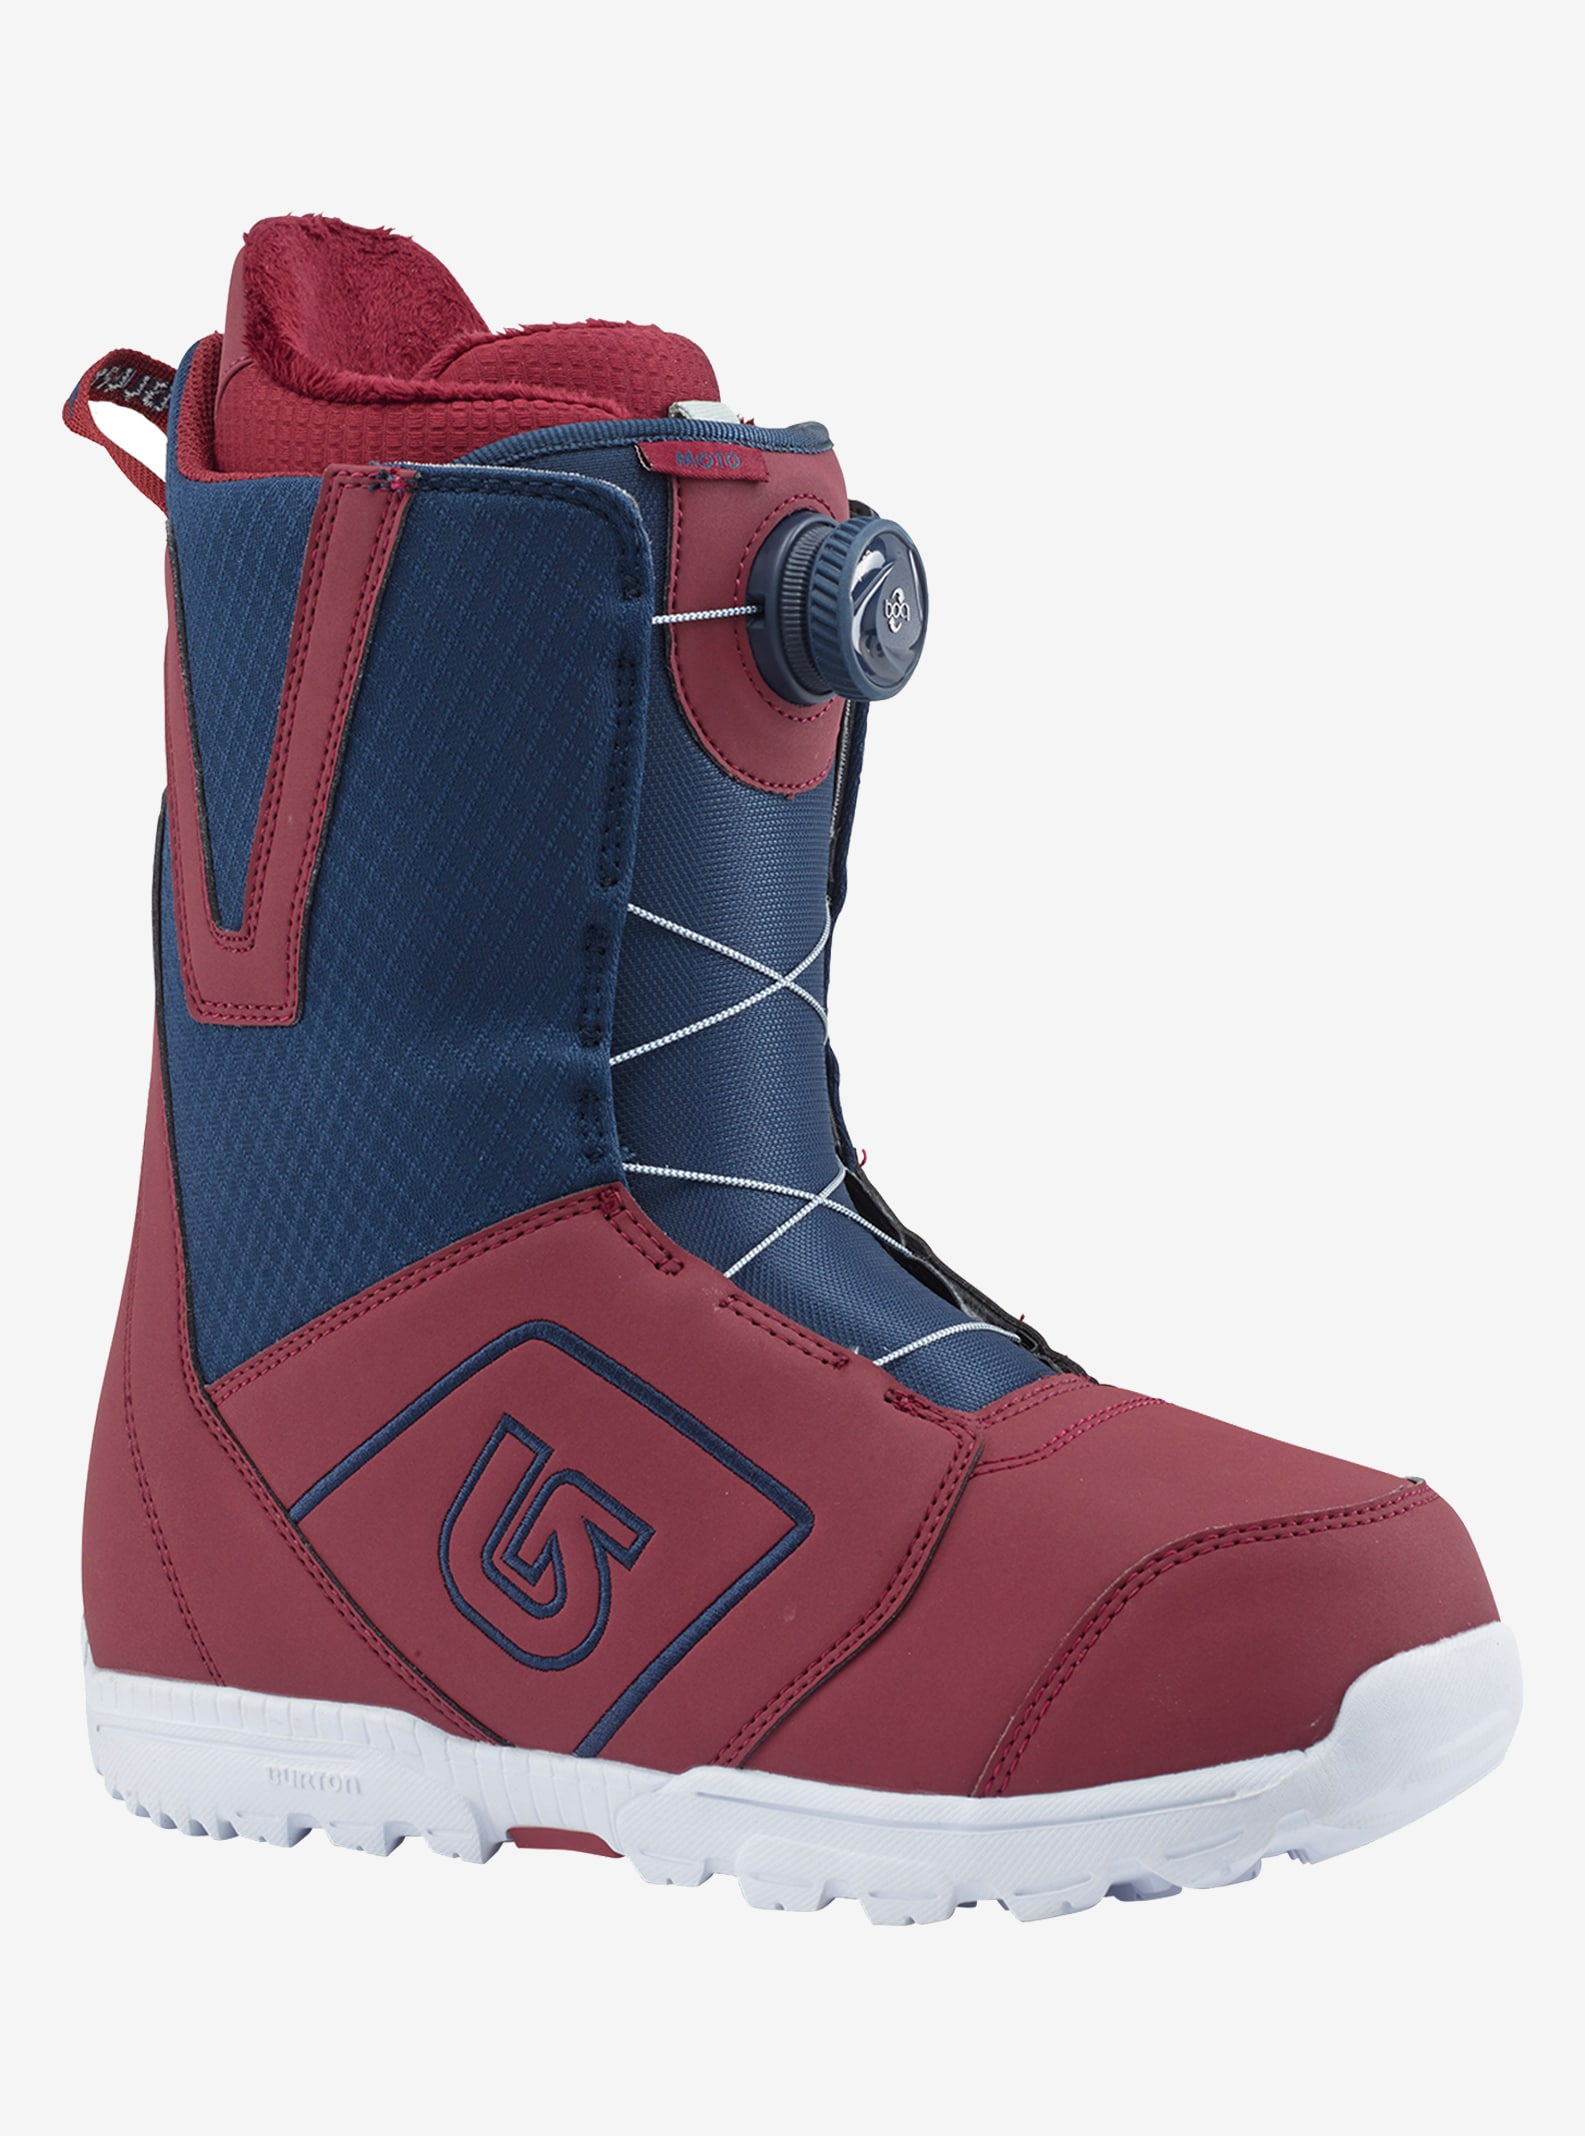 Men's Burton Moto Boa® Snowboard Boot shown in Maroon / Blue